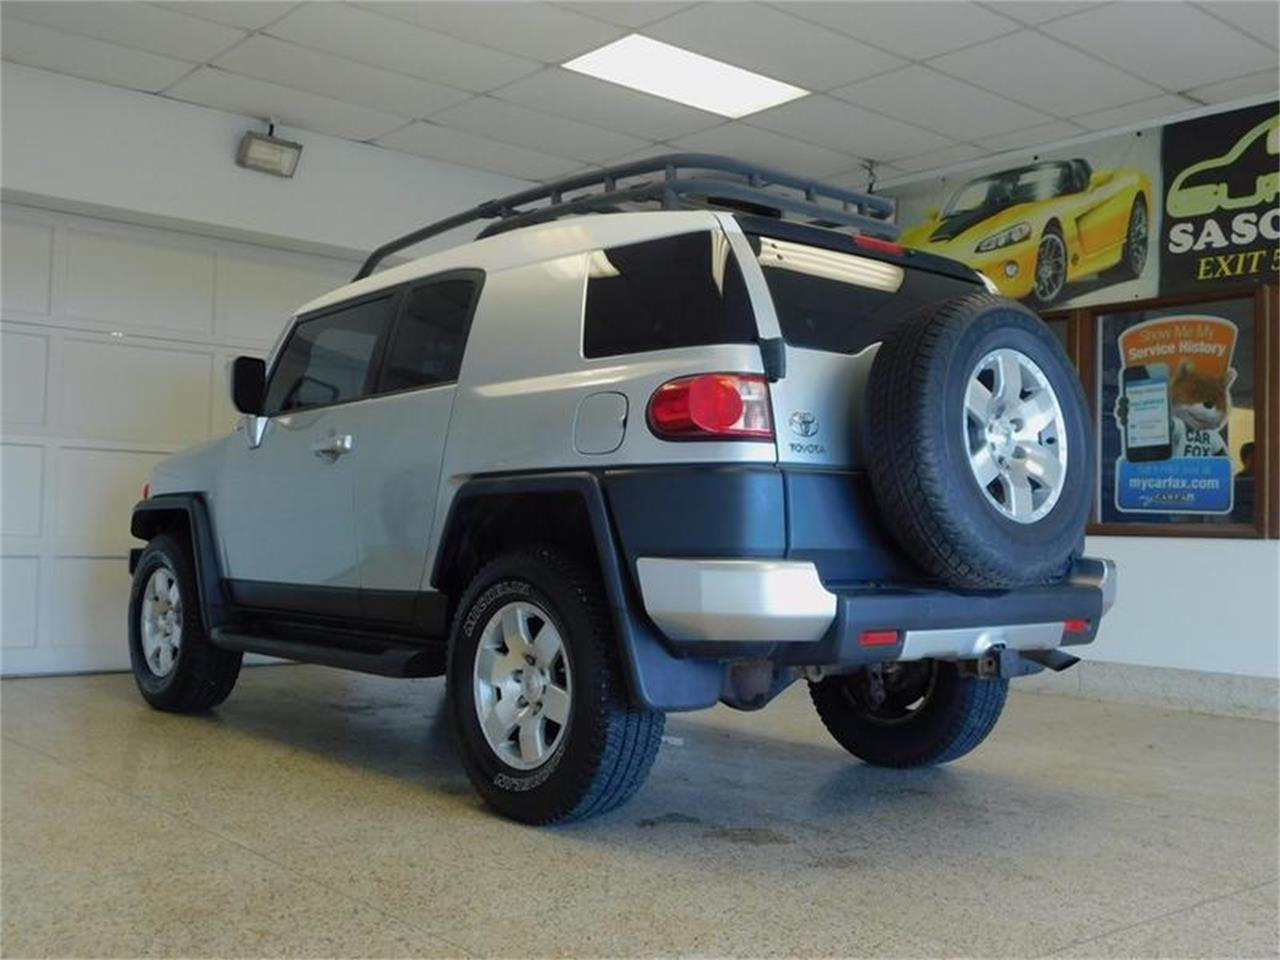 Large Picture of '07 Toyota FJ Cruiser located in Hamburg New York - $14,988.00 Offered by Superior Auto Sales - OKX8